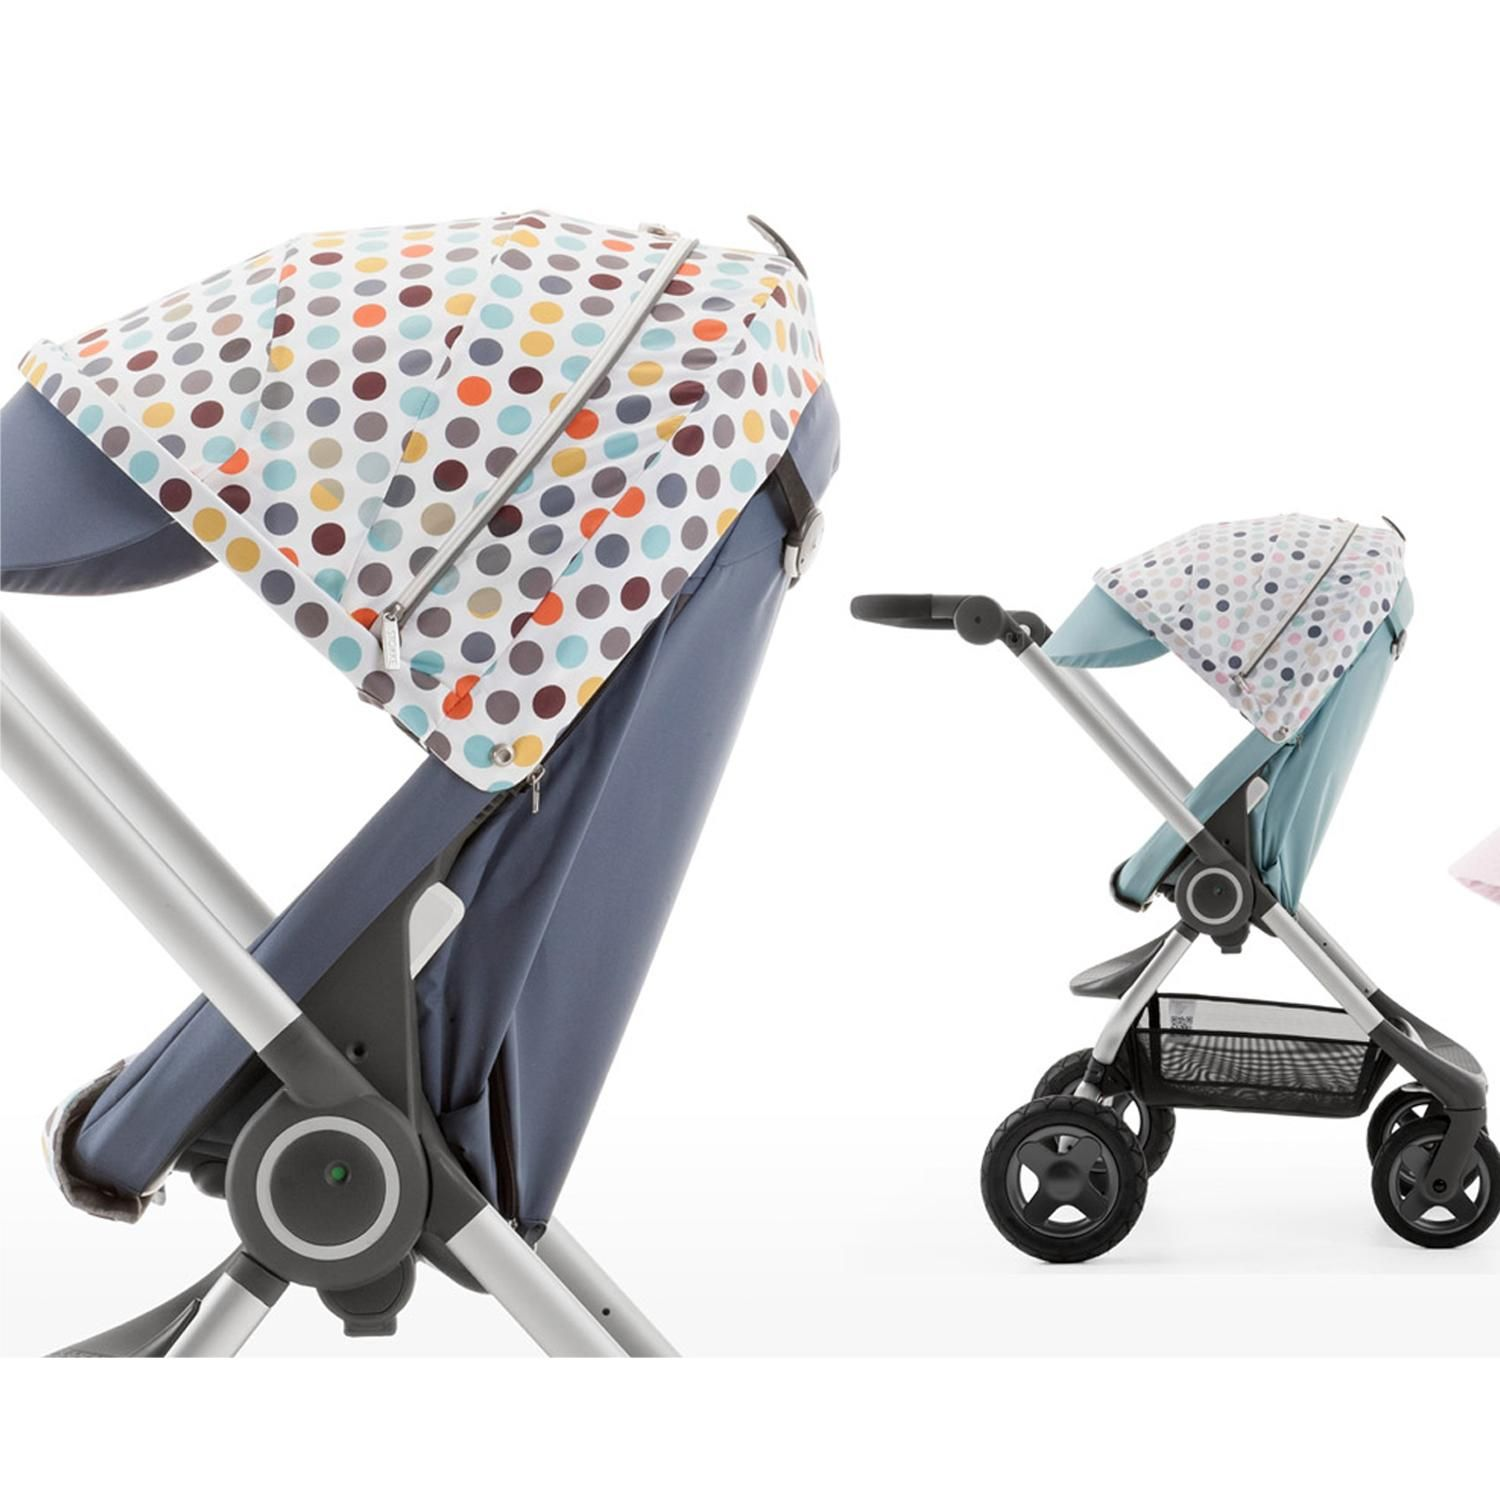 Playful Polkadots are in for Spring! Stokke Scoot with NEW